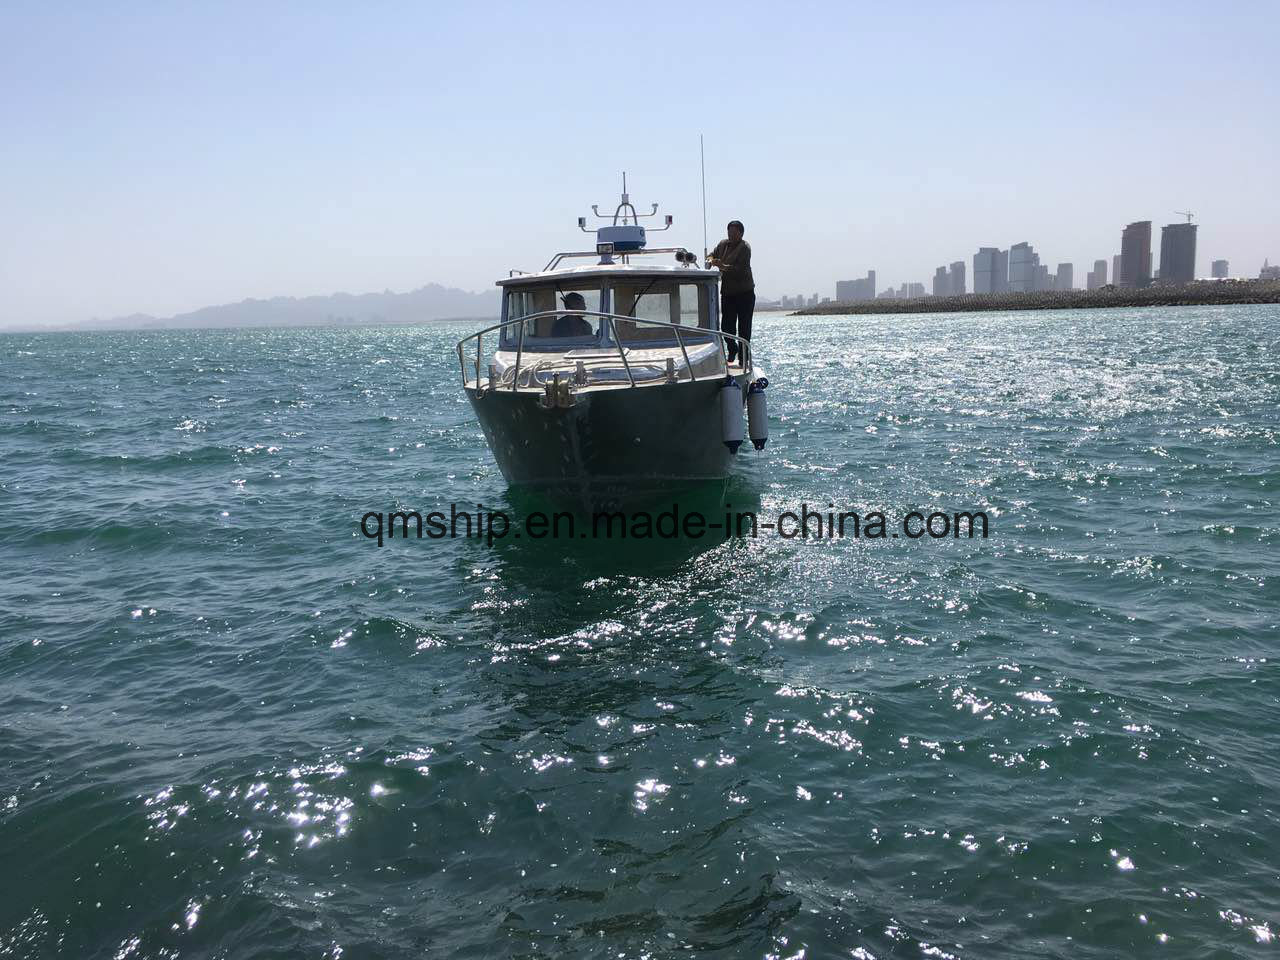 32FT 9.8 M Speed Fishing Boat QM980